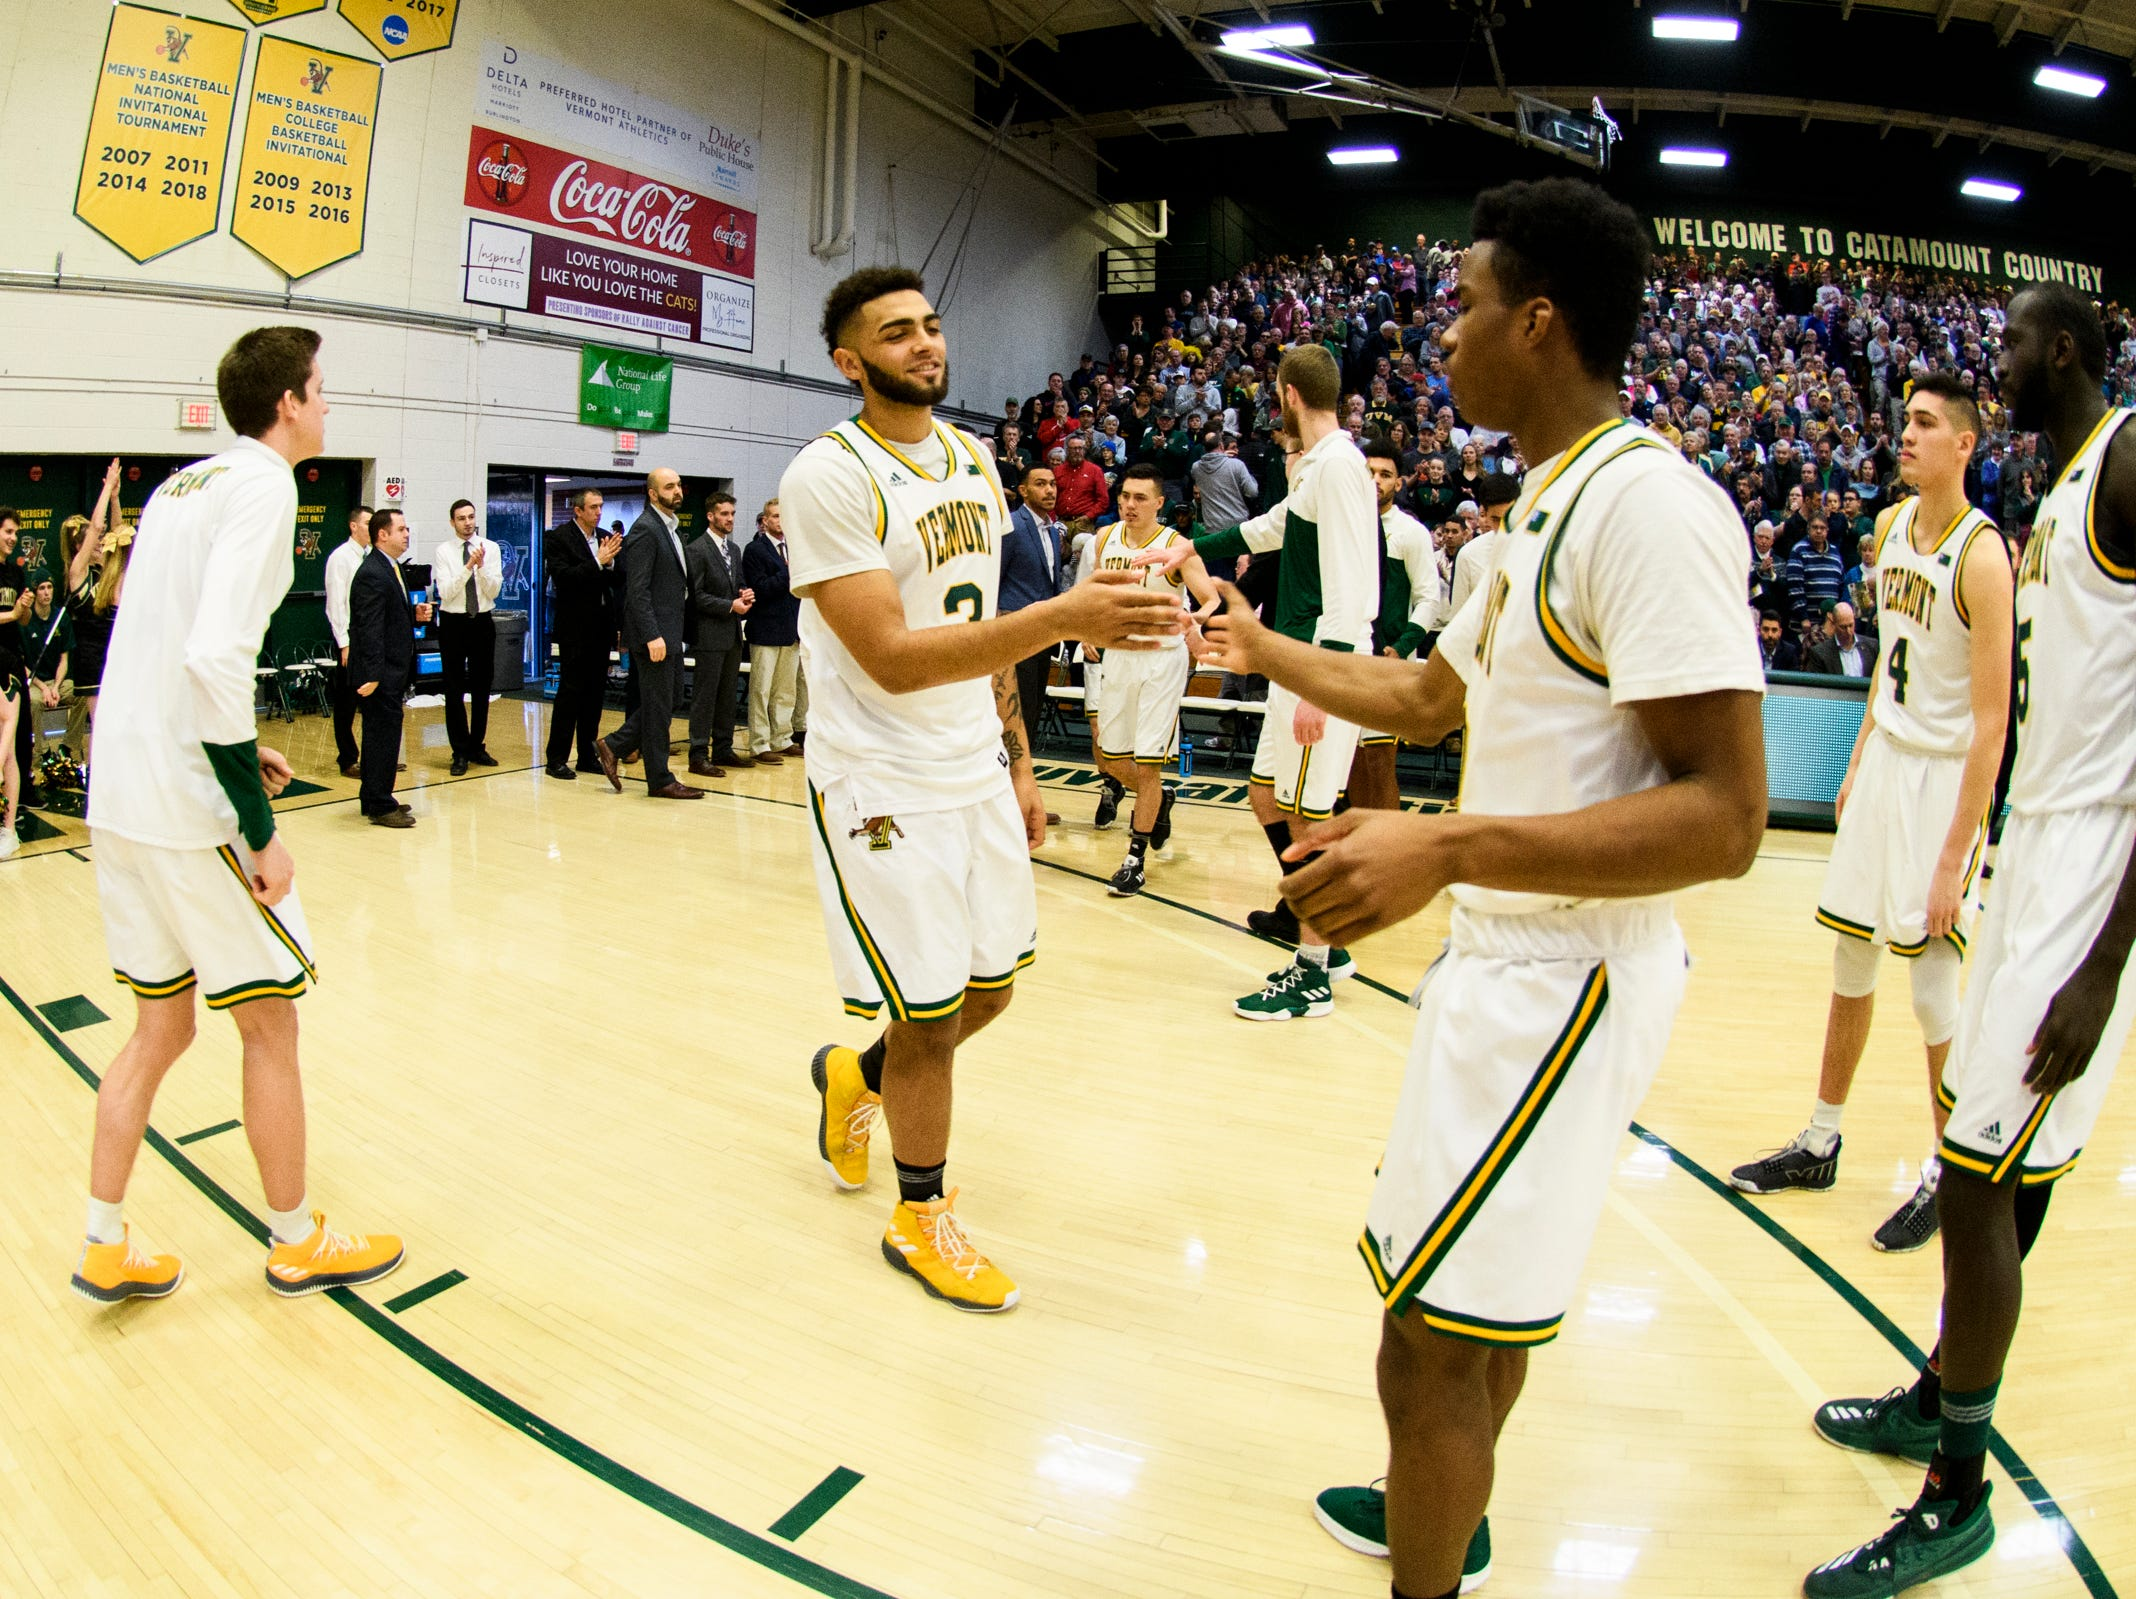 Vermont forward Anthony Lamb (3) is greeted by Vermont guard Stef Smith (0) as he takes the court during the men's basketball game between the Albany Great Danes and the Vermont Catamounts at Patrick Gym on Saturday February 9, 2019 in Burlington, Vermont.